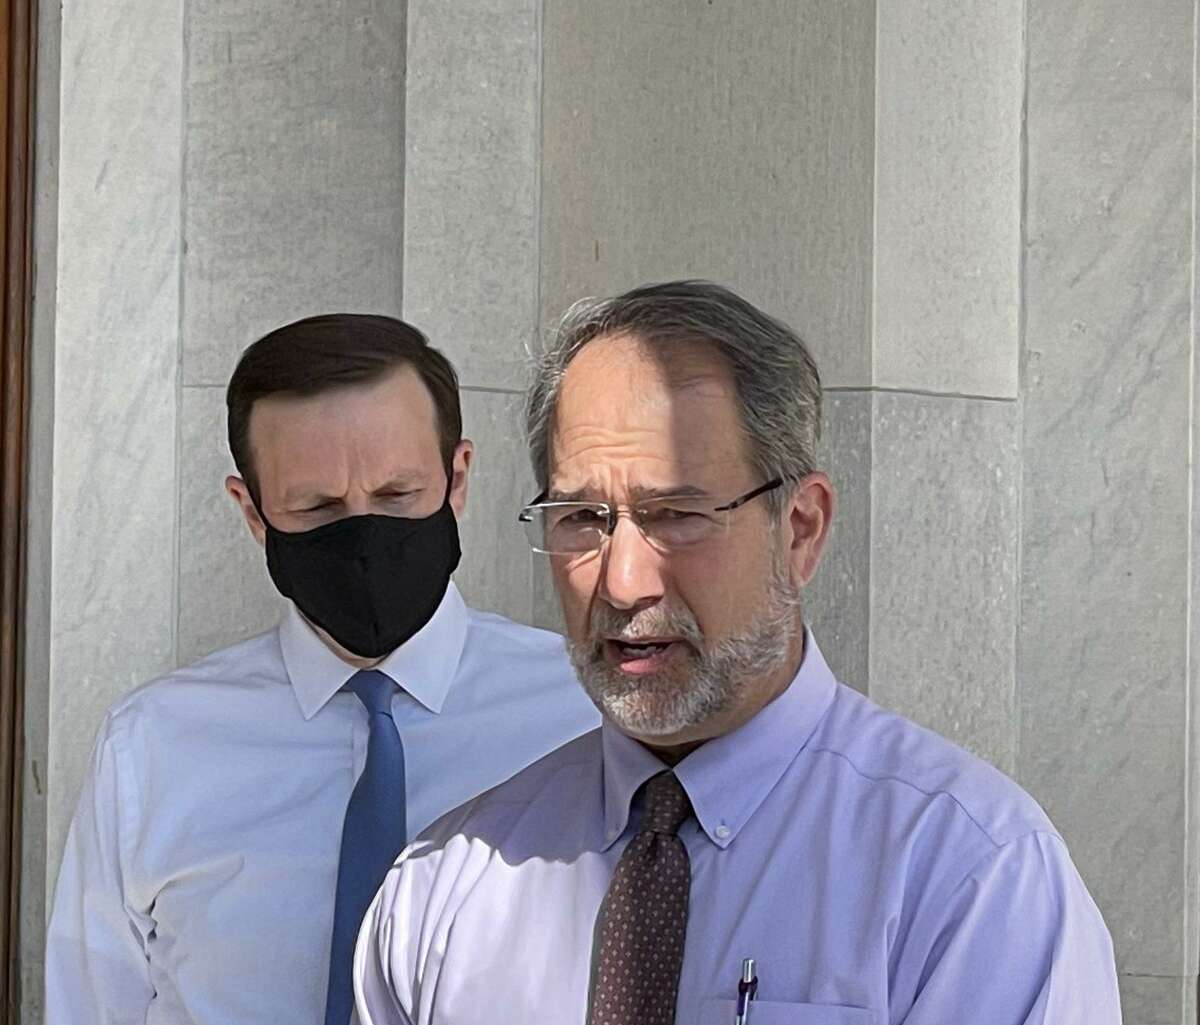 Chris George, executive director of New Haven-based Integrated Refugee & Immigrant Services, known as IRIS, has told the federal government his agency an help with the crisis of child migrants at the U.S. borders. He is shown with Sen. Chris Murphy at the state Capitol on Monday, March 22, 2021.